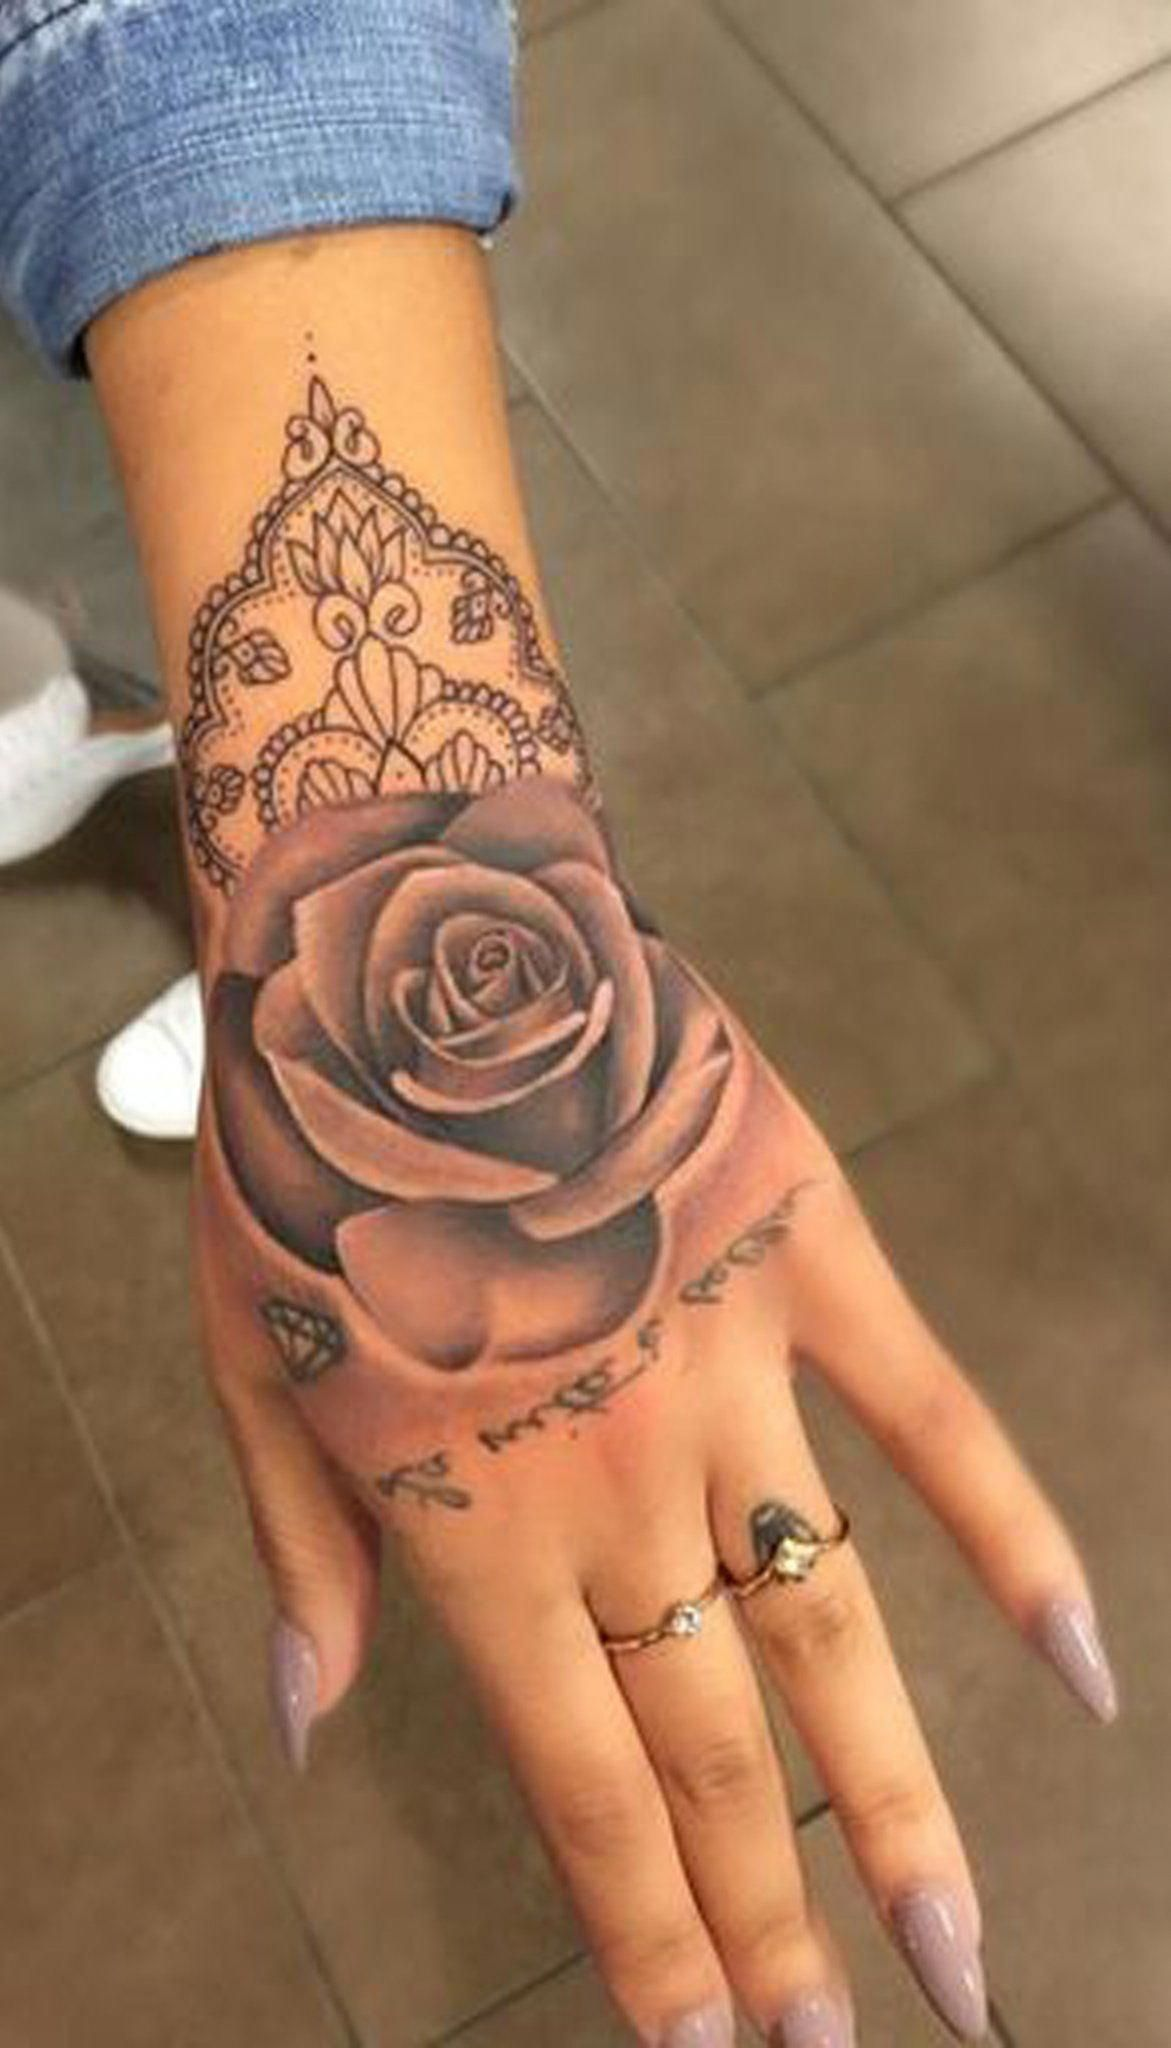 Geometric Rose Hand Tattoo Ideas For Women Unique Watercolor Mandala Tat Www Mybodiart Com Tattoos Coolgeometrictat Rose Hand Tattoo Hand Tattoos Tattoos